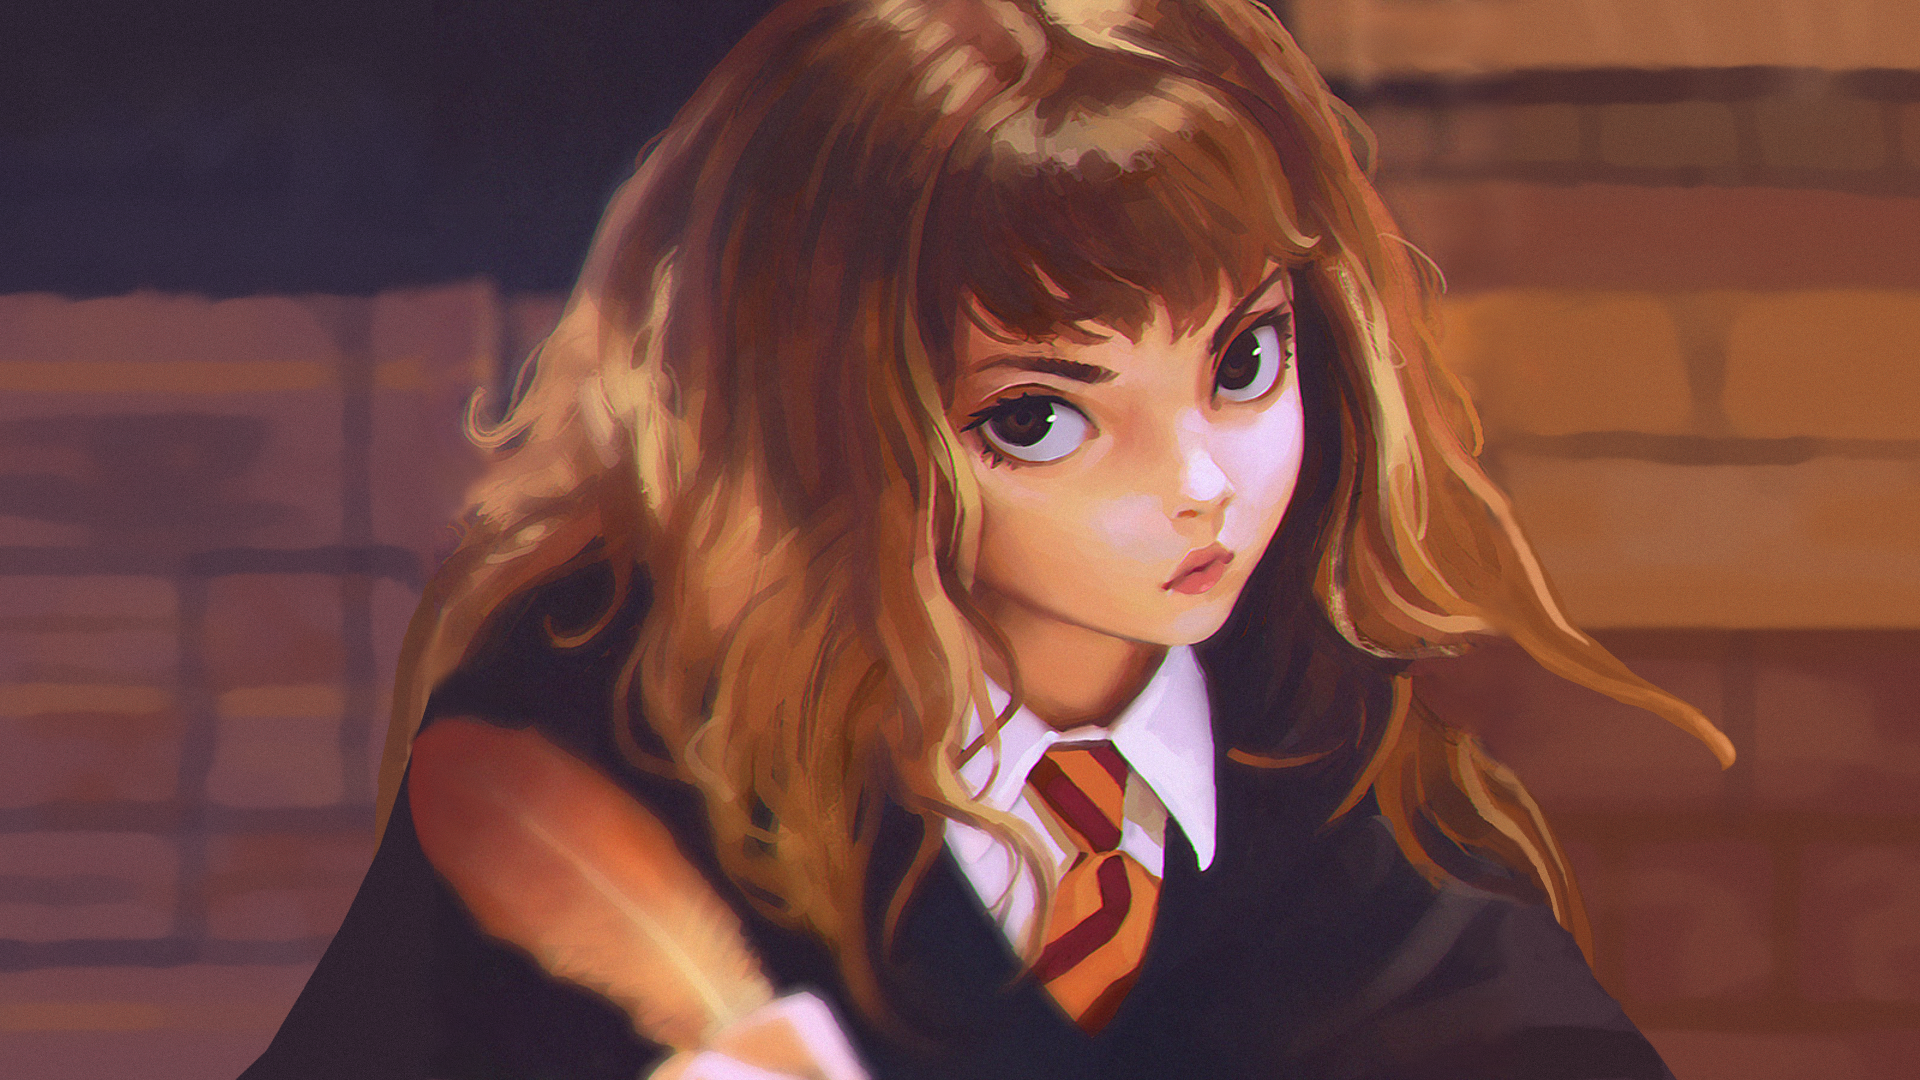 Download 1920x1080 Hermione Granger, Anime Style, Harry Potter